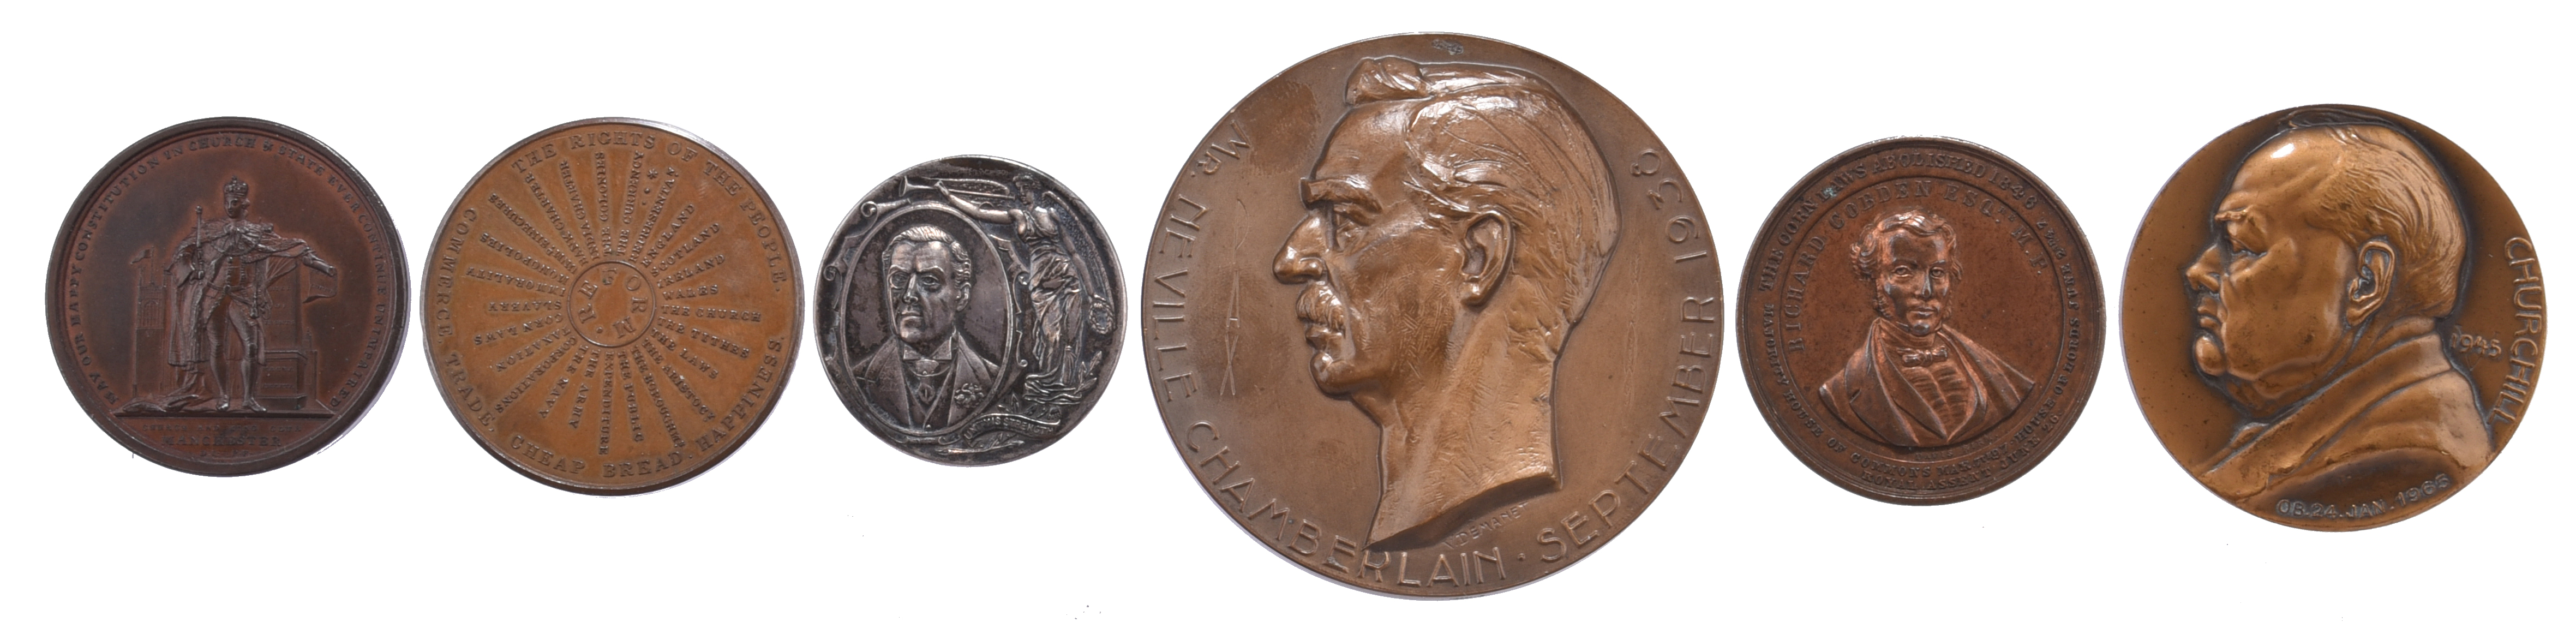 A quantity of commemorative medals, political themes, including: Church and King Club Manchester